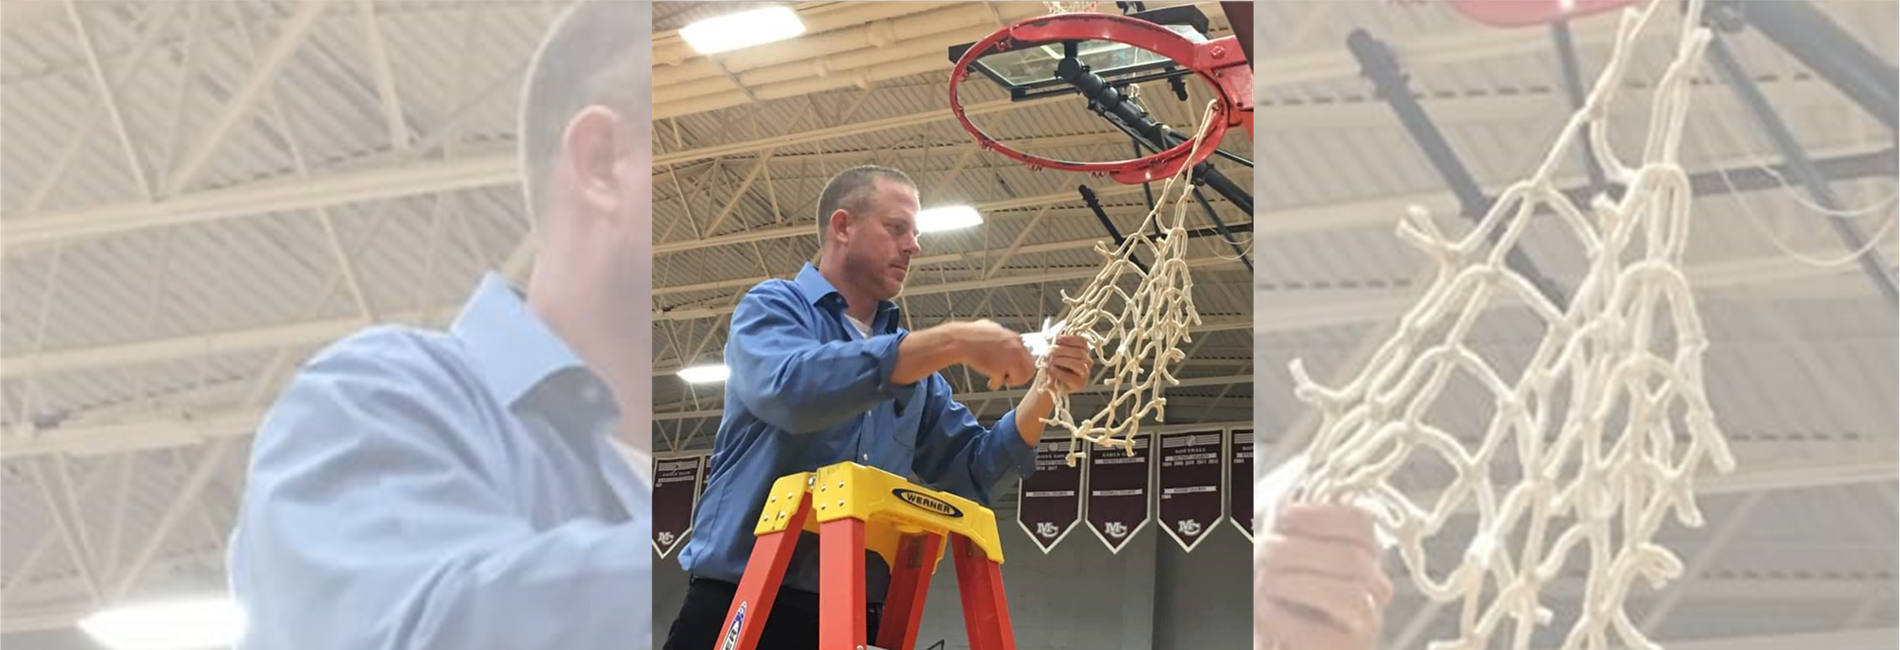 Congratulations to Coach Todd Messer - the all-time winningest boys basketball coach at Clinton County High School!